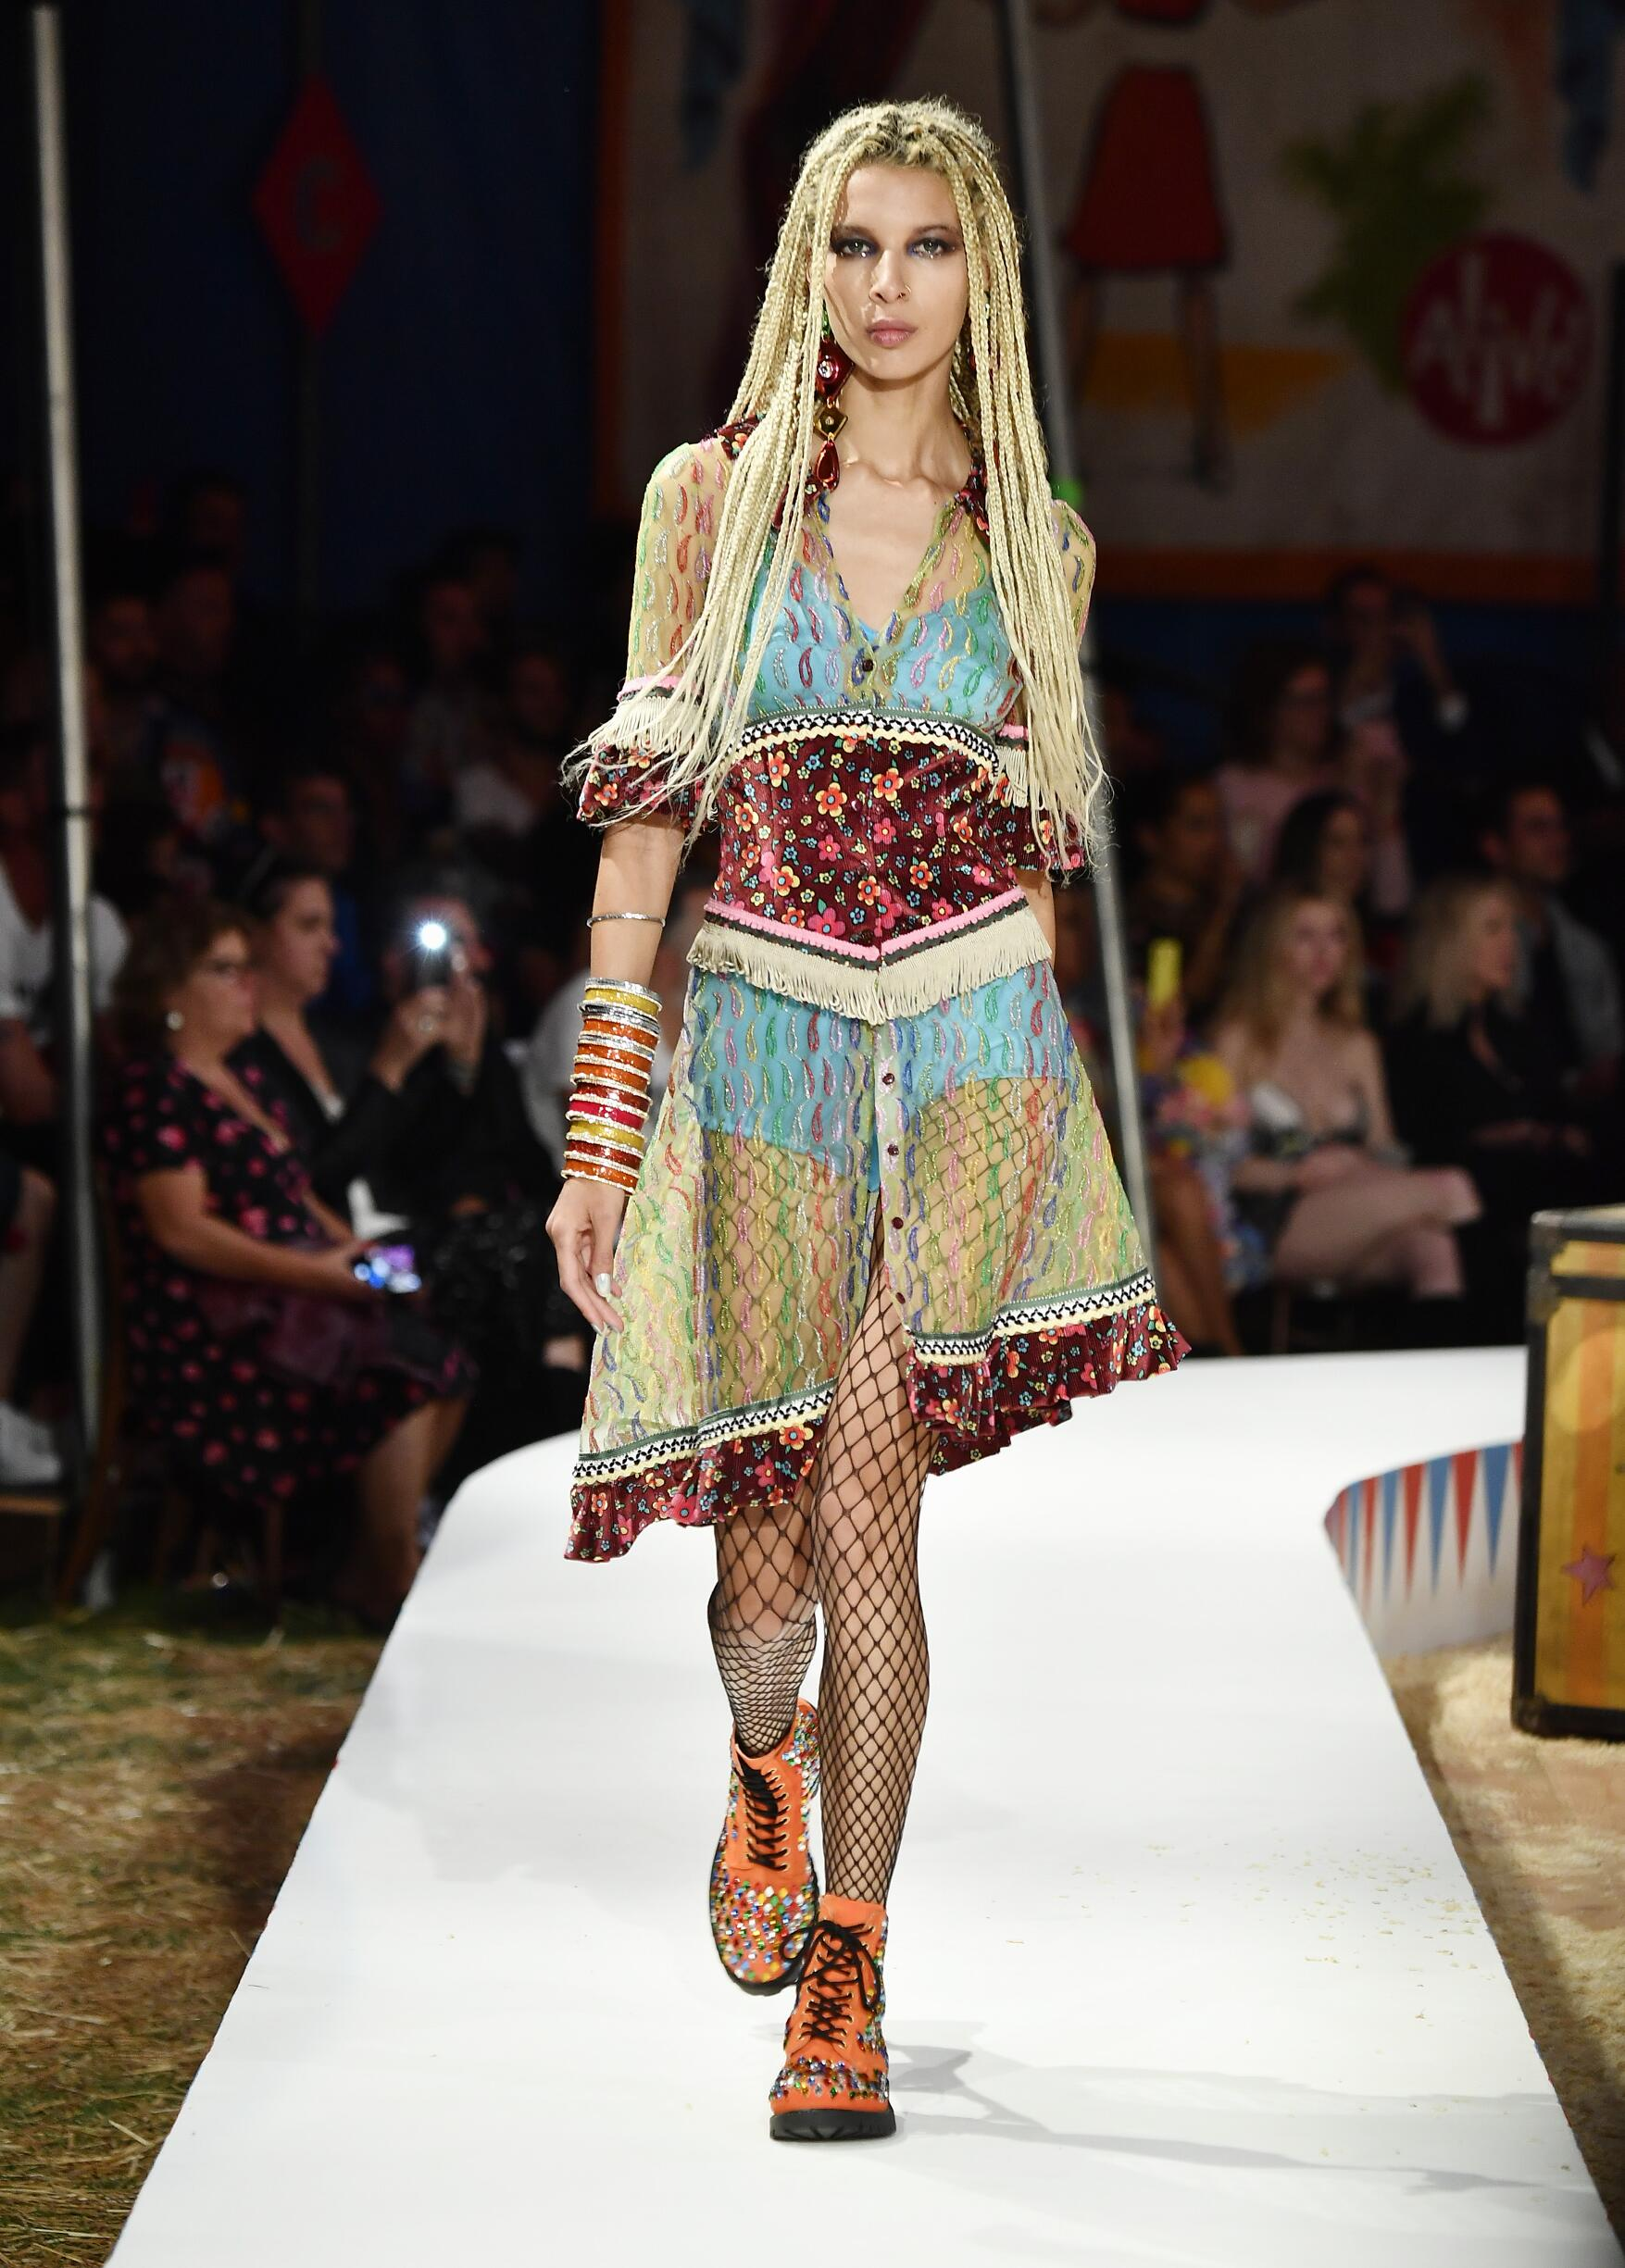 Moschino Spring Summer 2019 Menswear and Women's Resort Collection Look 20 Los Angeles